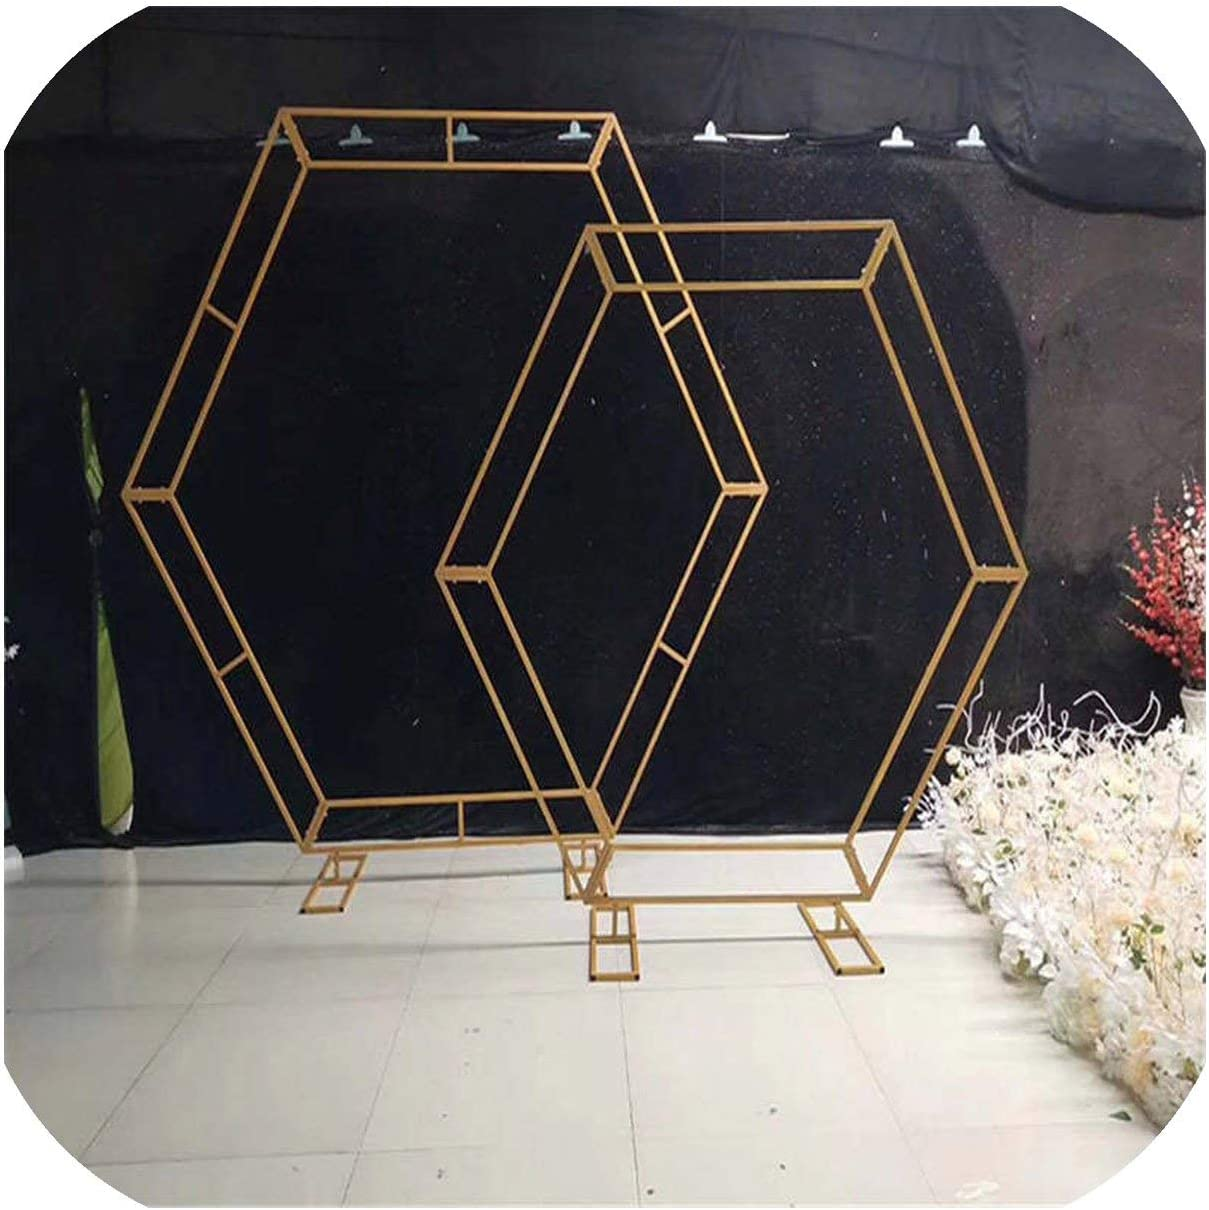 Wrought Iron Arch Wedding Background Birthday Party Decoration Rhombic Iron Arch Frame Stage Decoration Wedding Props,210cm,Gold